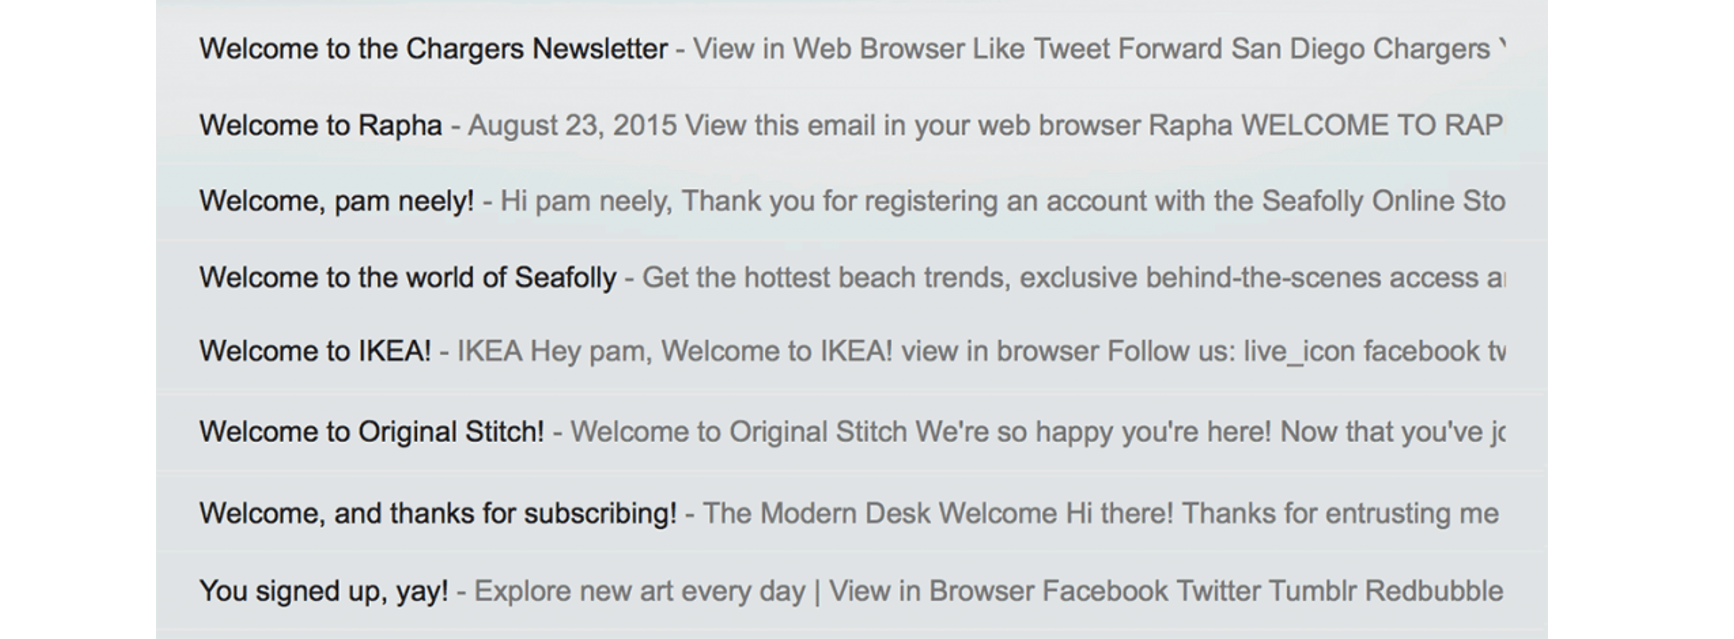 list of example subject lines for welcome emails